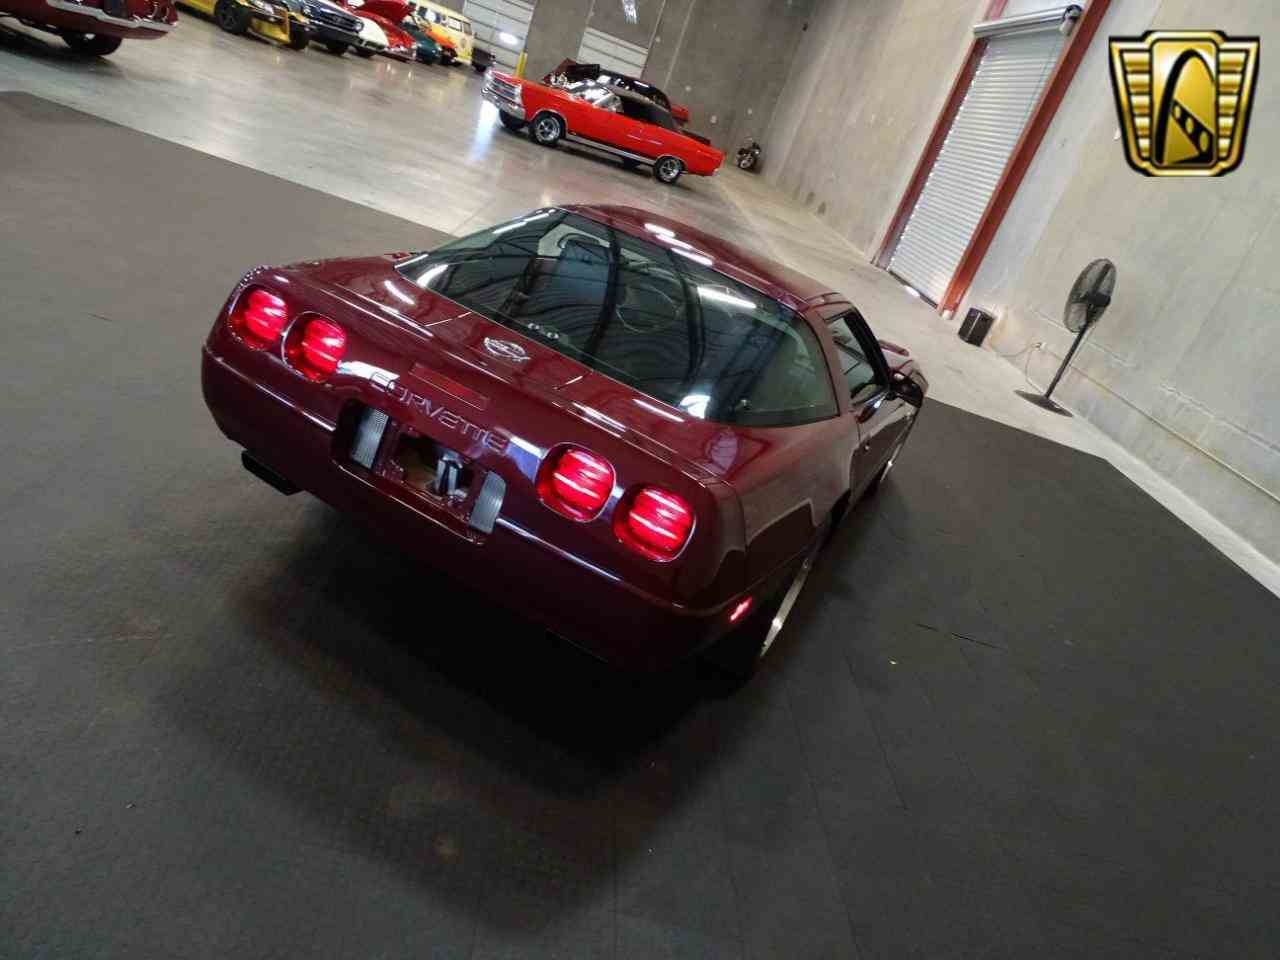 Large Picture of '93 Chevrolet Corvette located in Florida - $17,995.00 Offered by Gateway Classic Cars - Tampa - KDMF